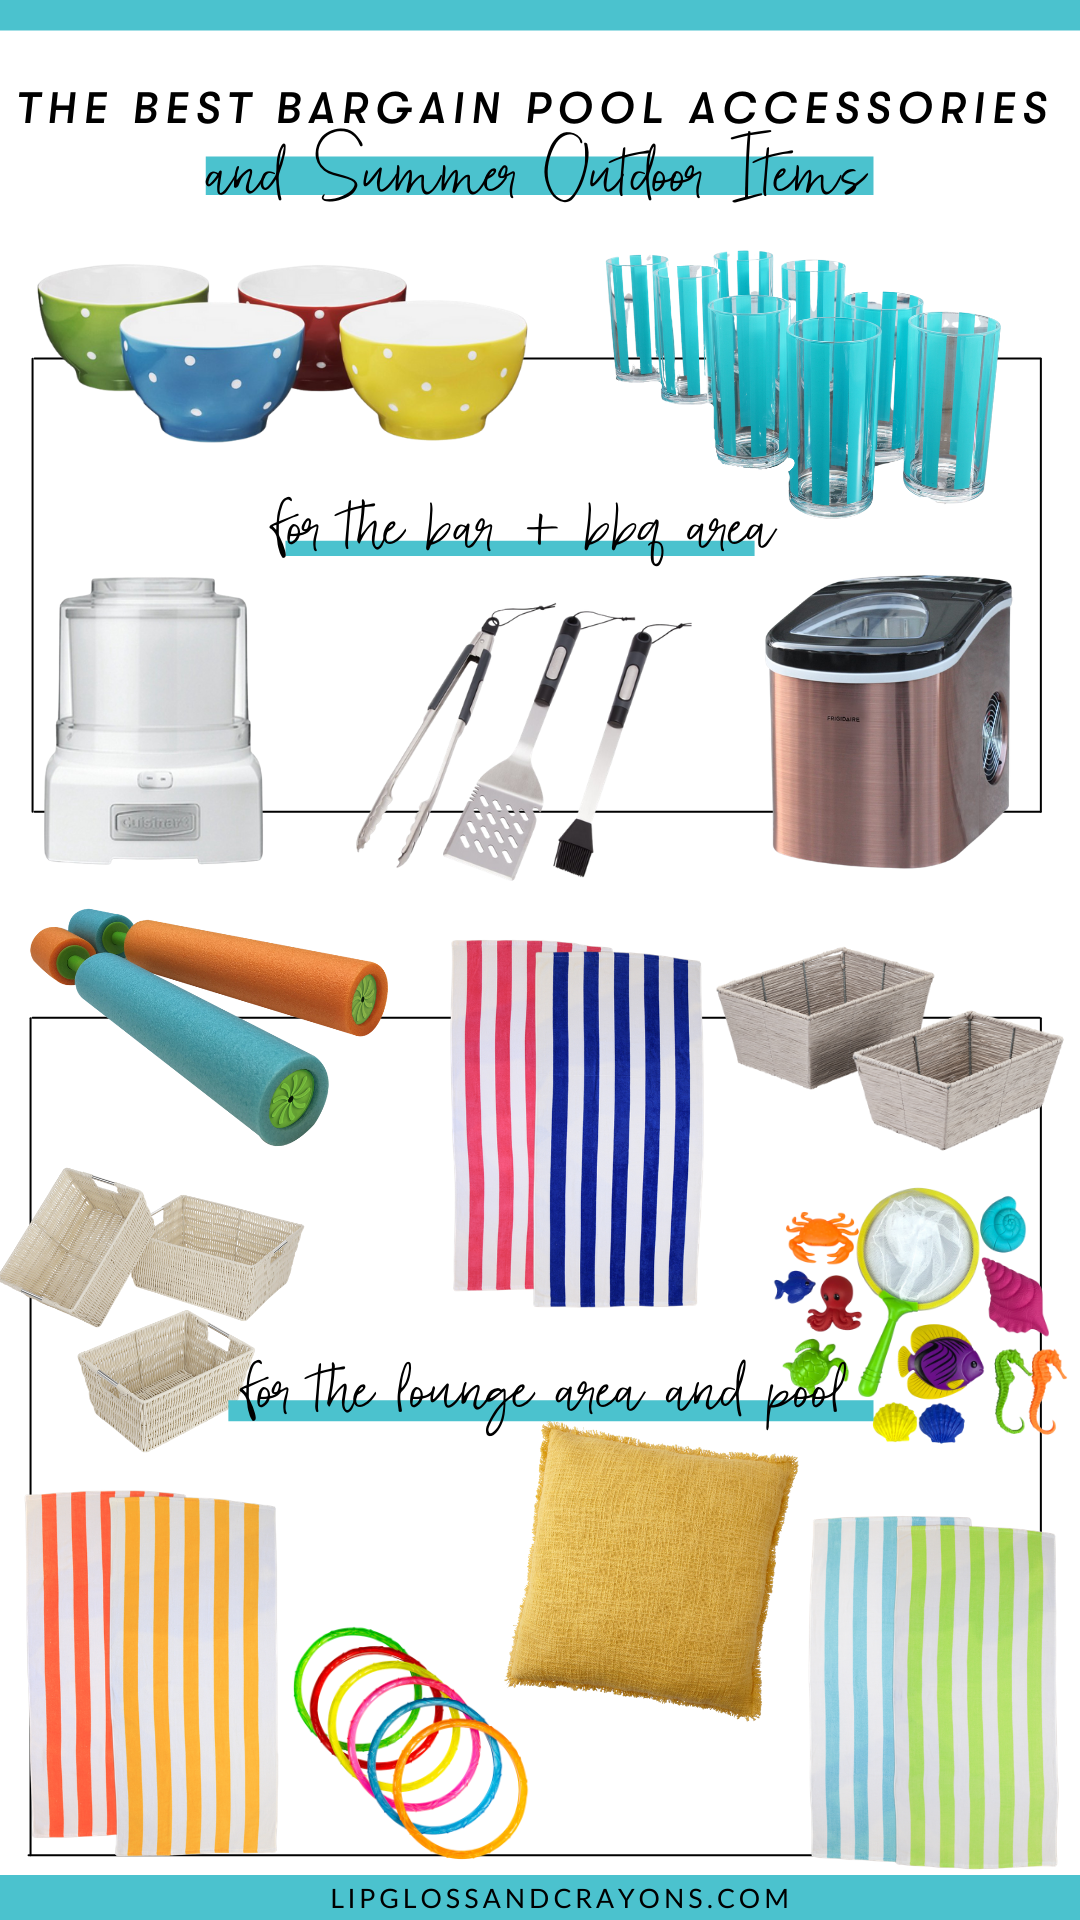 Summer is HERE! If you're gearing up for outdoor celebrations and backyard soirees, then these bargain pool accessories and outdoor items are for YOU!